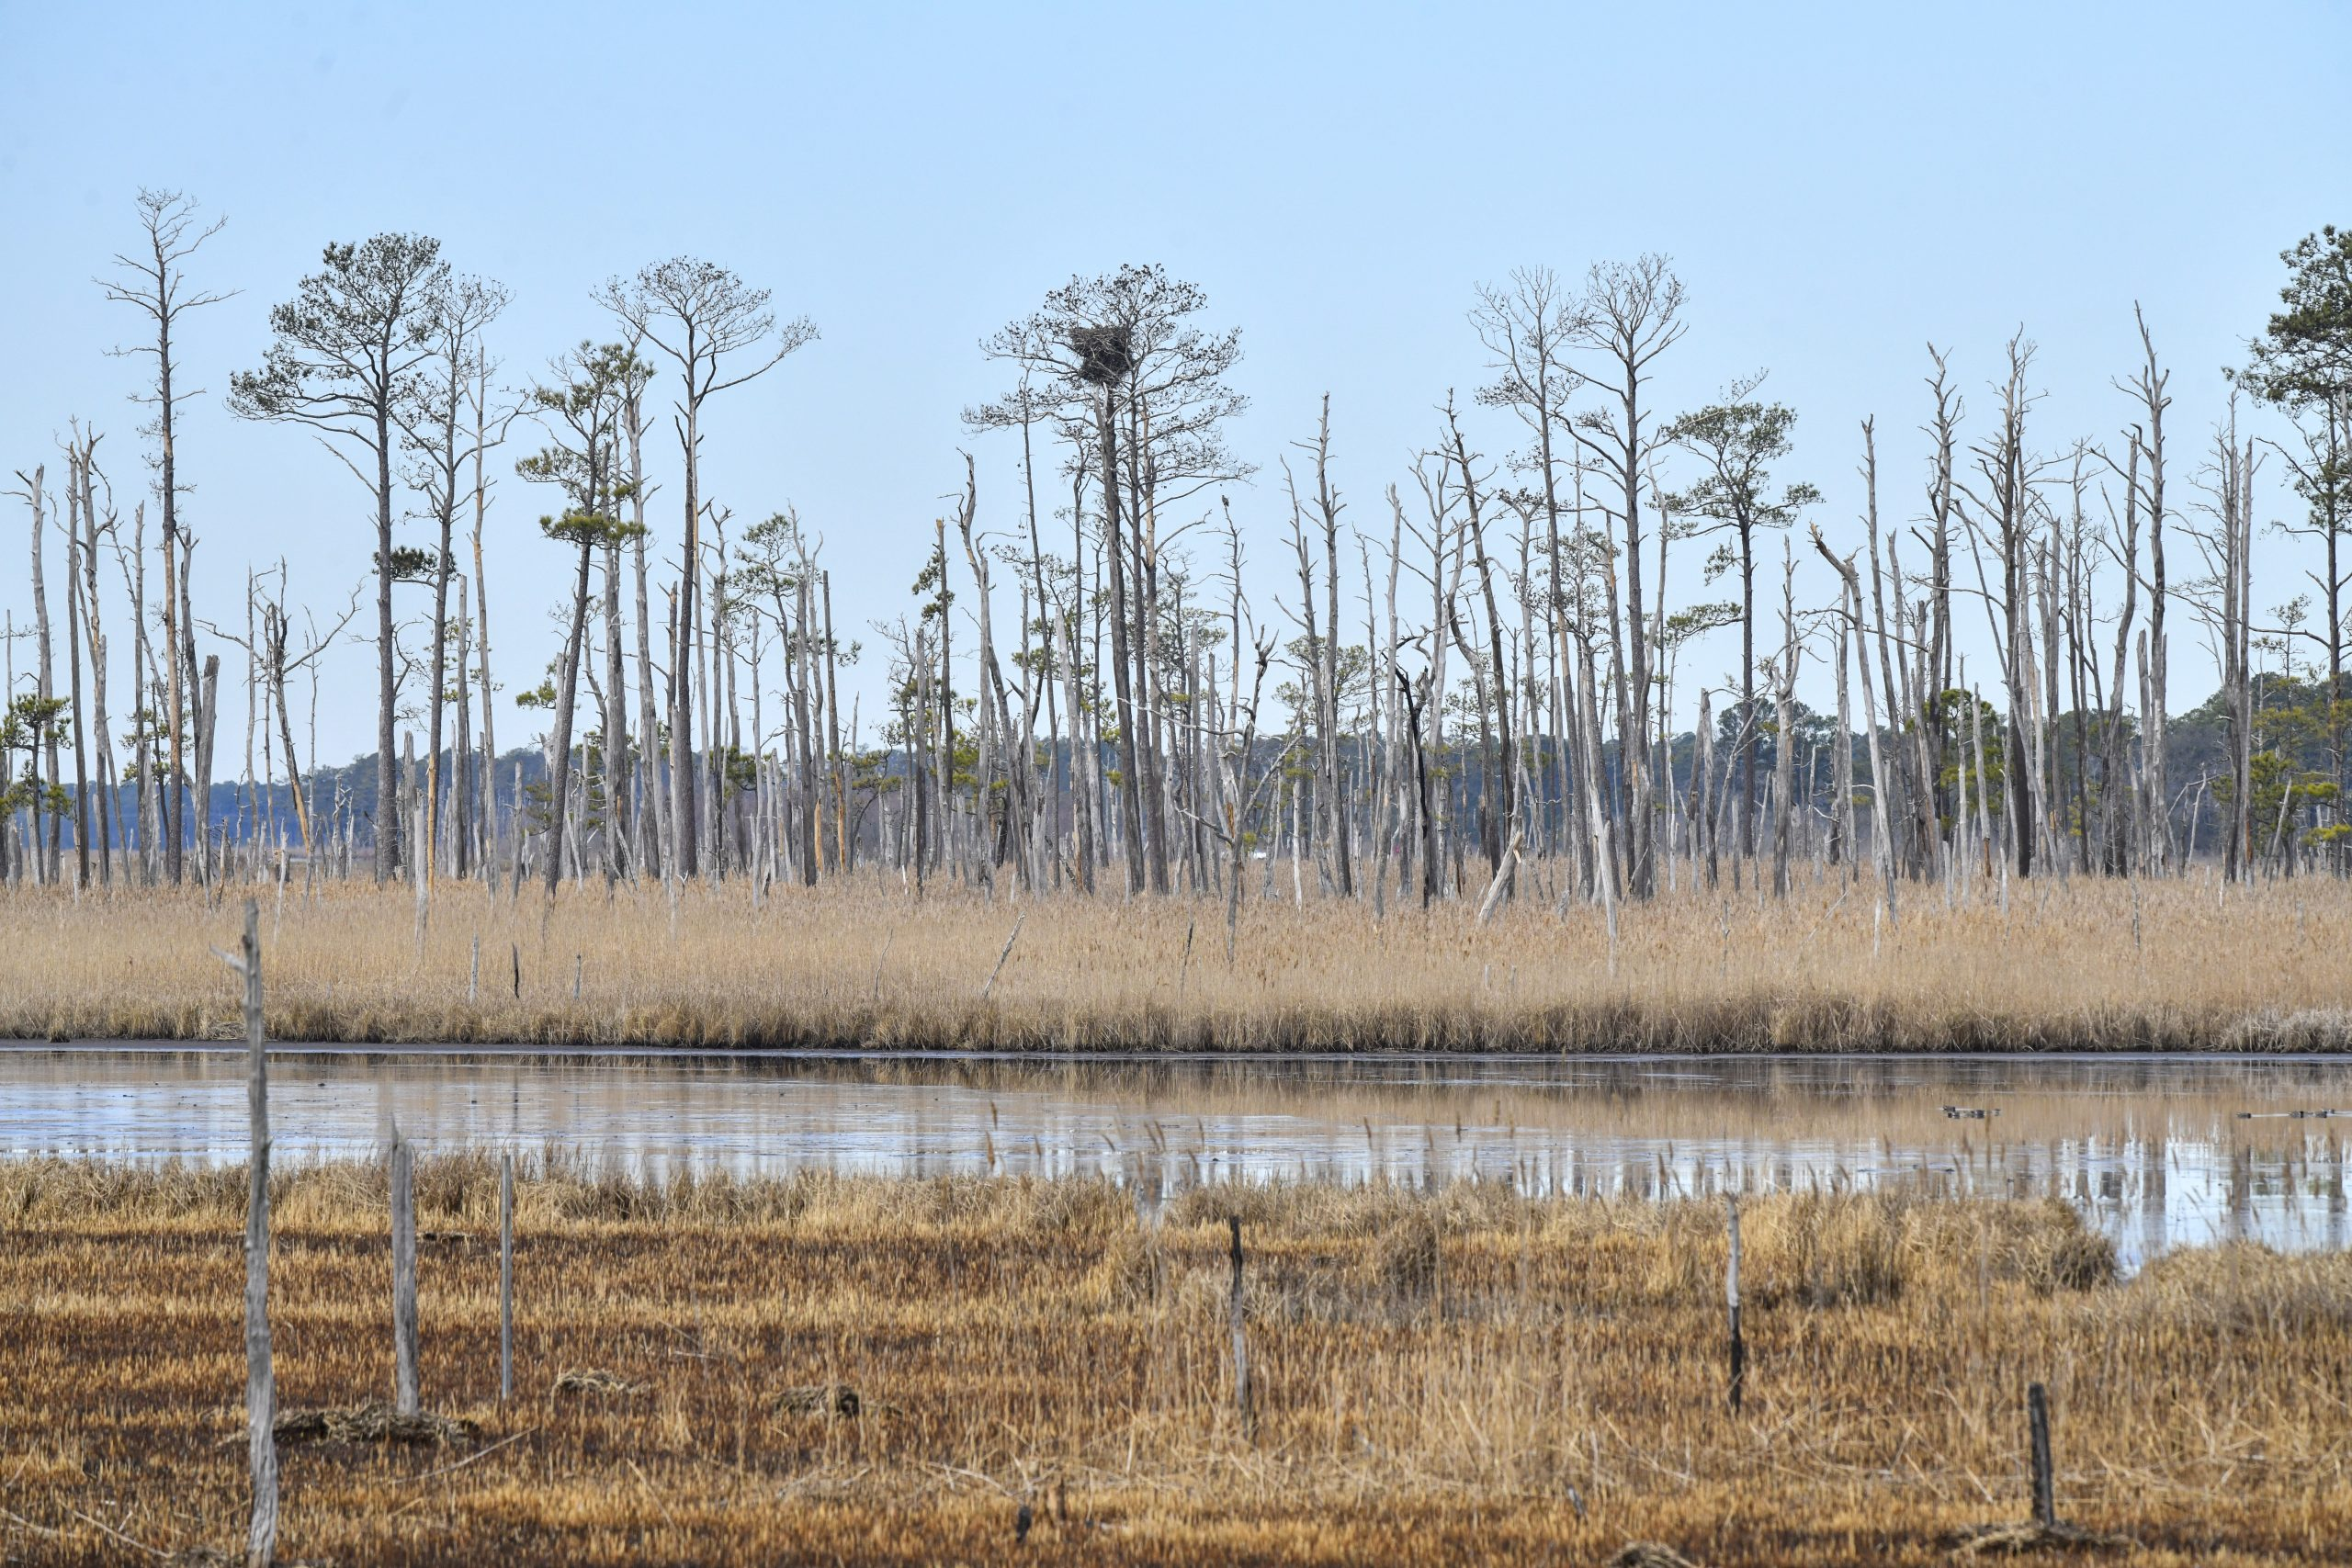 Invading saltwater kills trees from the roots up. The last to succumb at the Blackwater National Wildlife Refuge are the loblolly pines. Photo credit: Sarah Sopher/University of Maryland